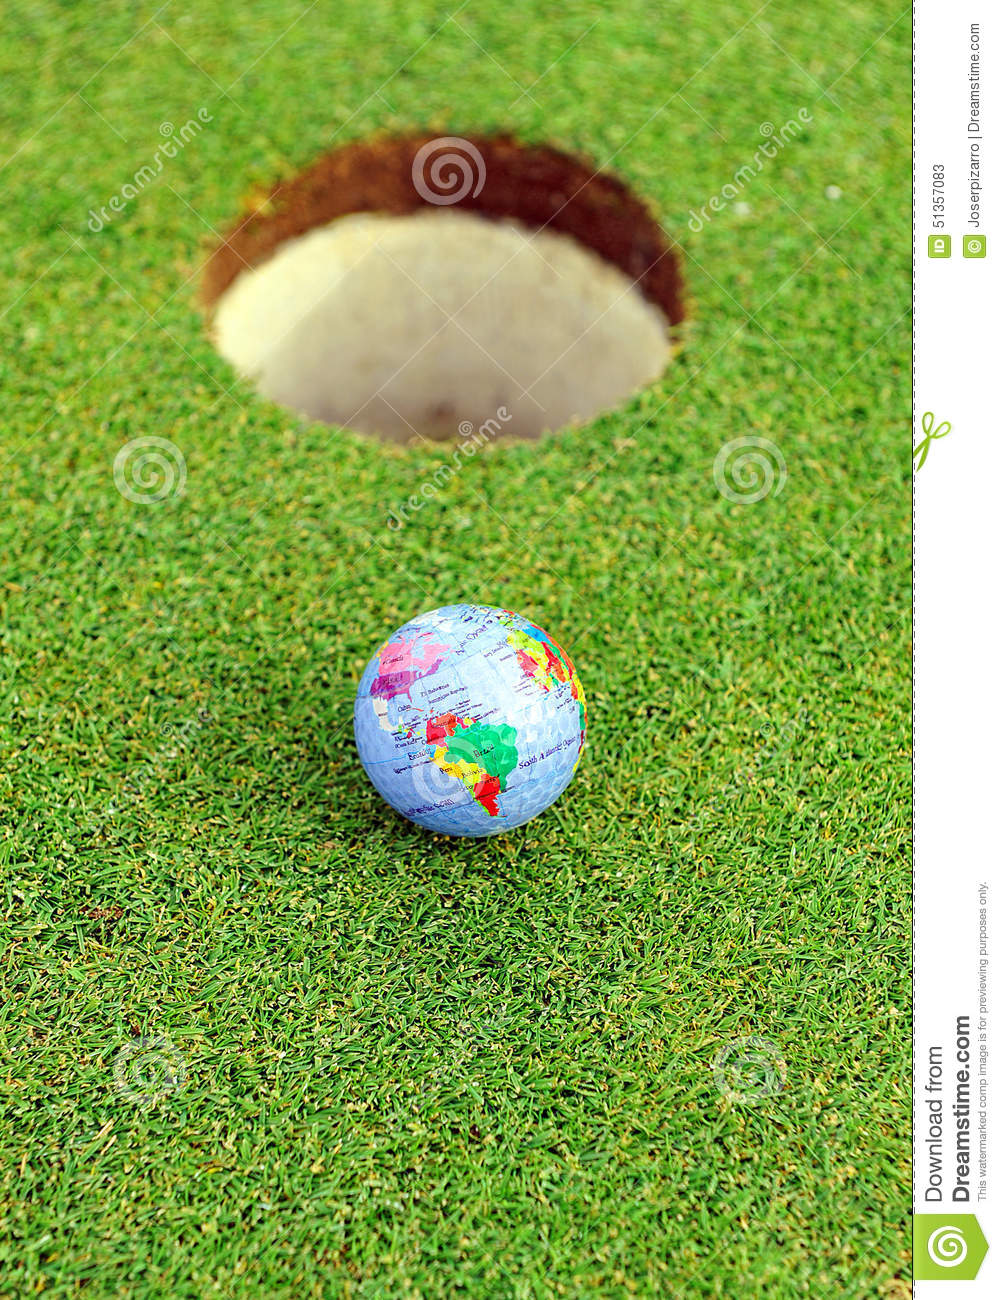 Golf ball in the hole, golf in the world